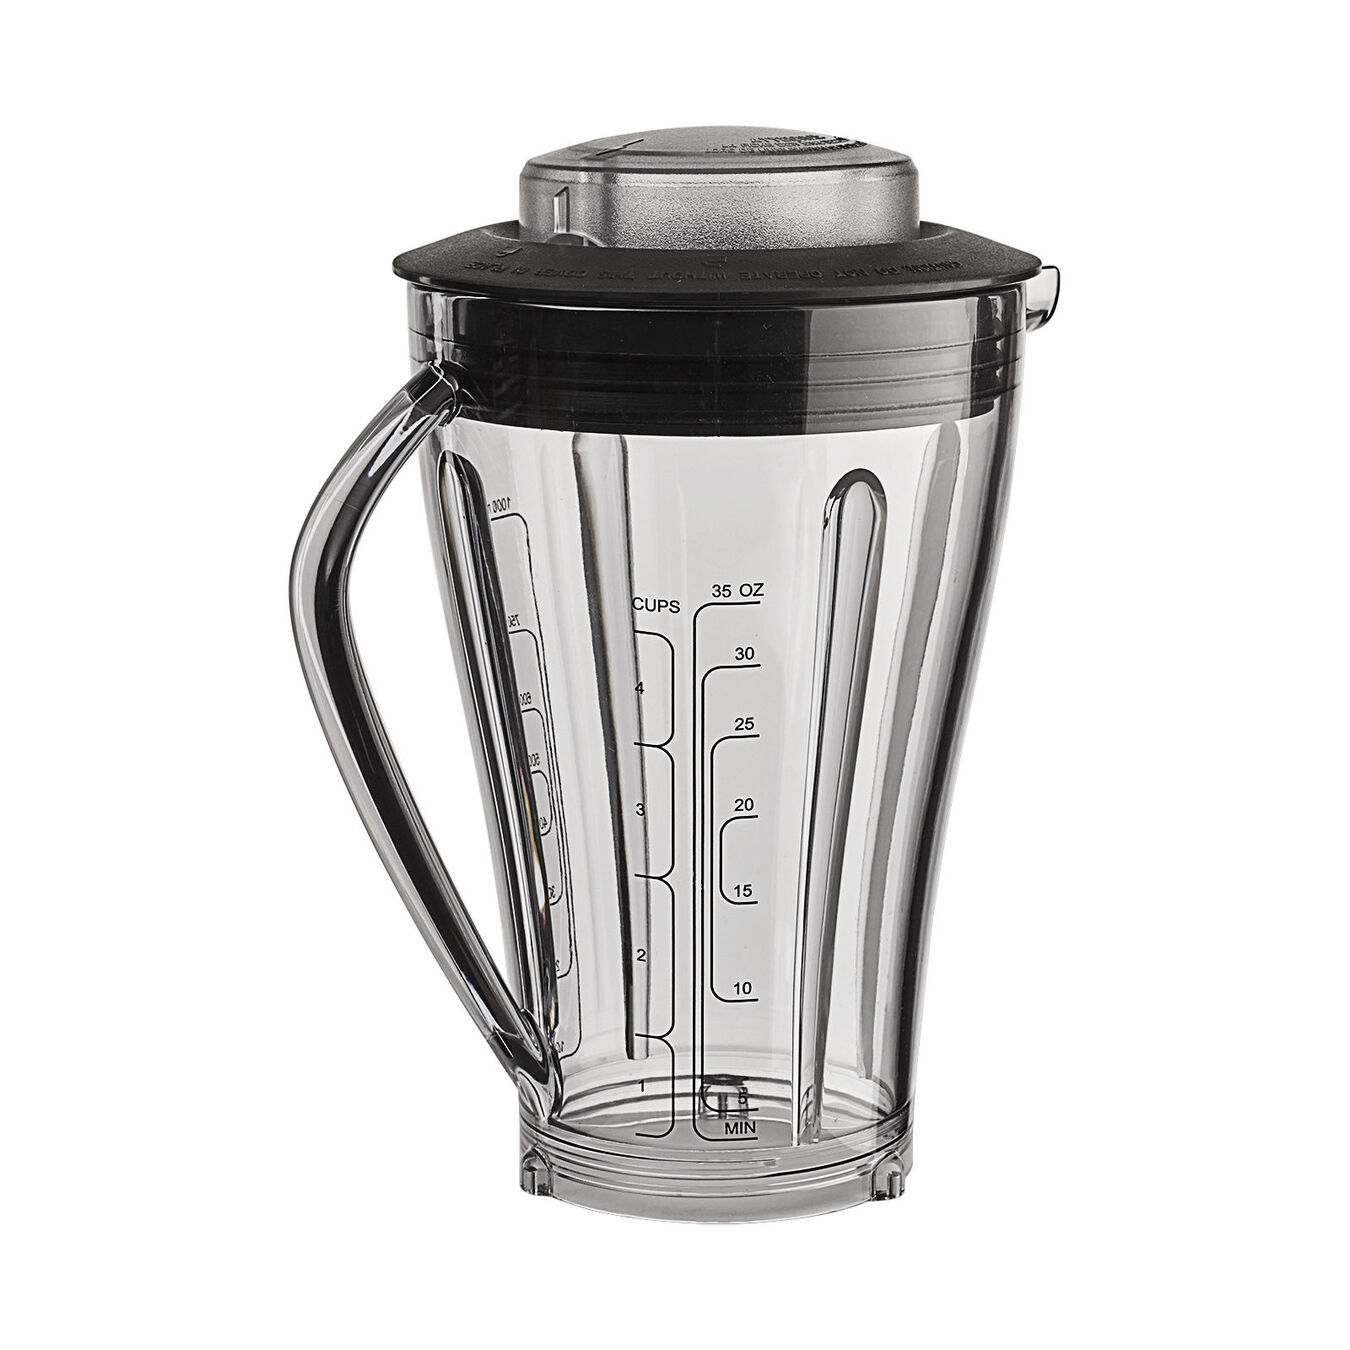 Countertop Blender - Cherry Red,,large 2